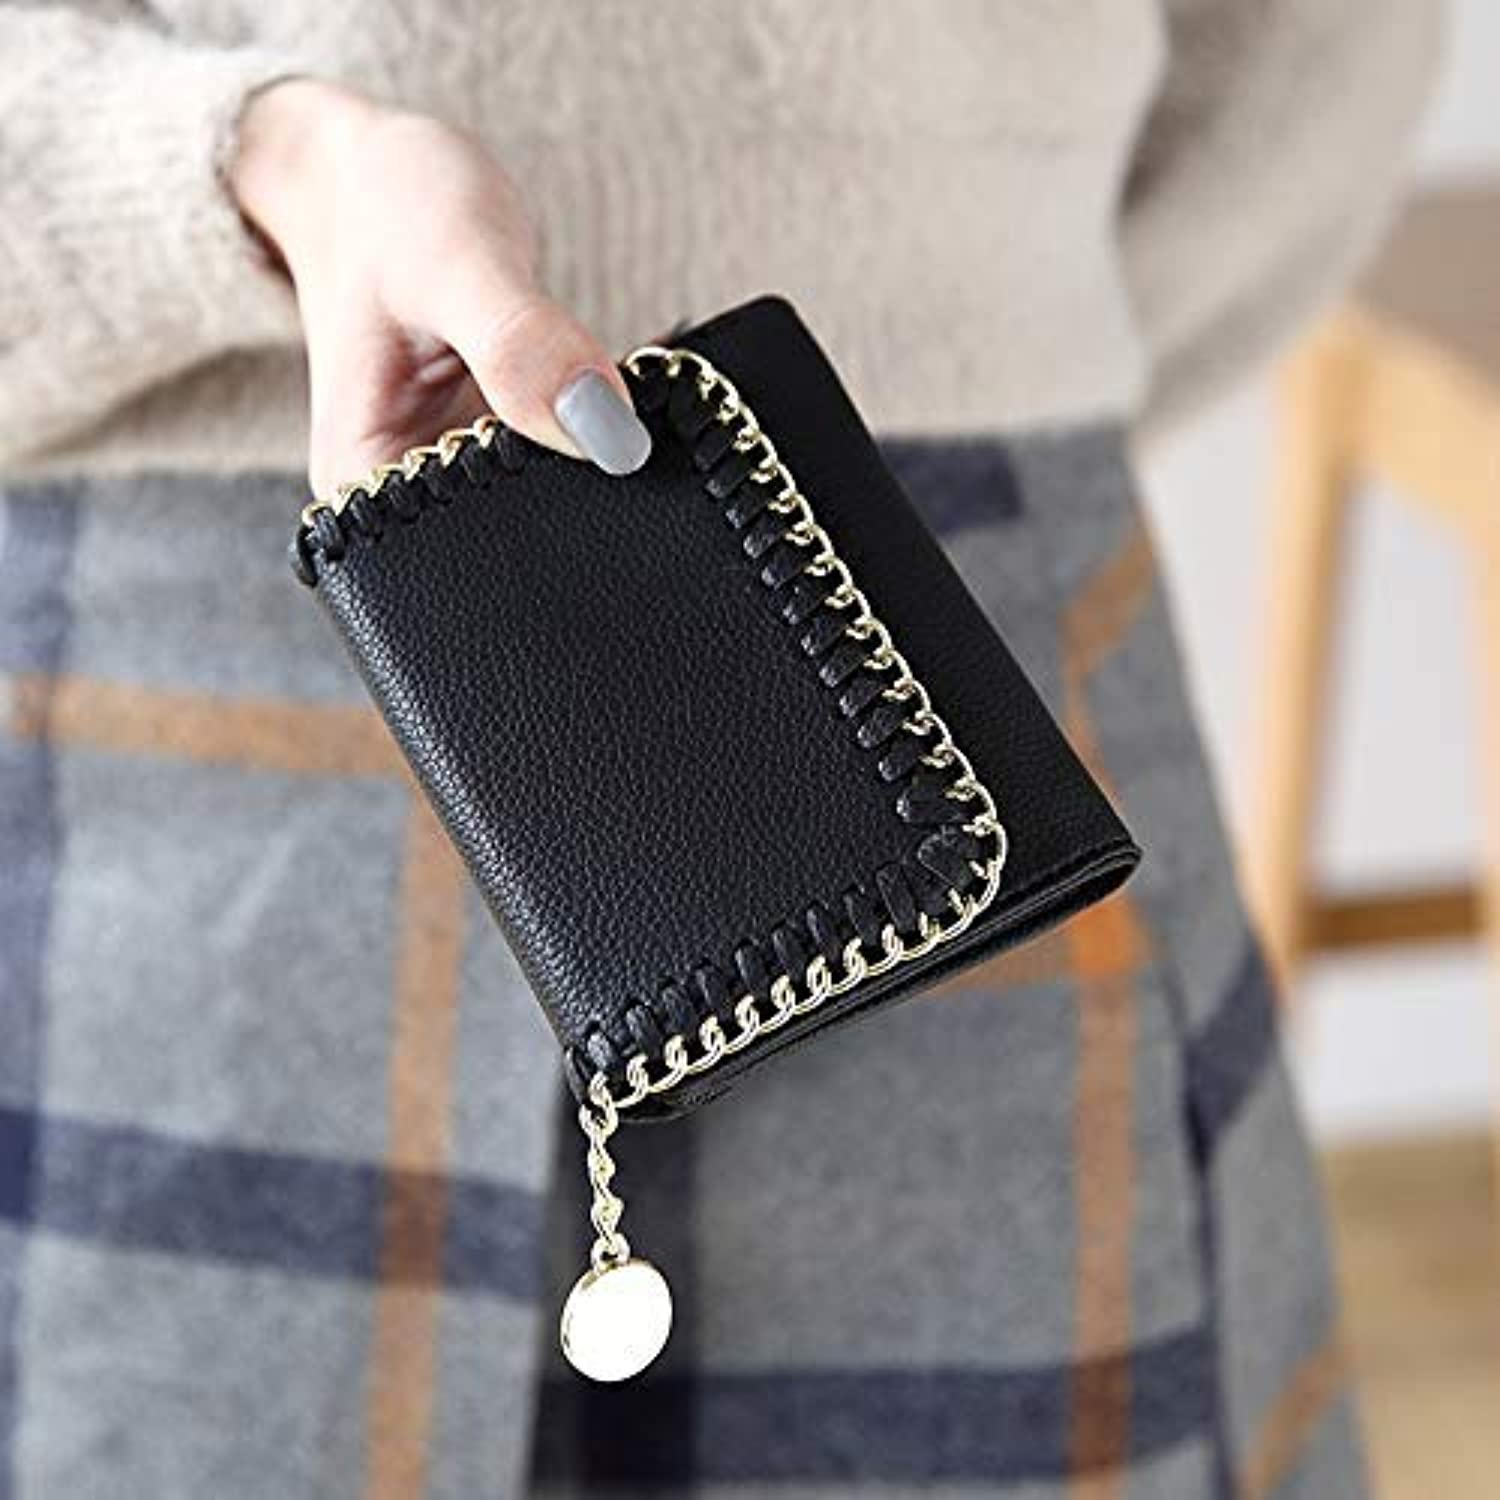 Women's Wallet Women's Short Paragraph Japanese and Korean Fashion Buckle MultiFunction Wallet Students LargeCapacity Woven Wallet (color   bluee) Ladies Purses (color   Black)